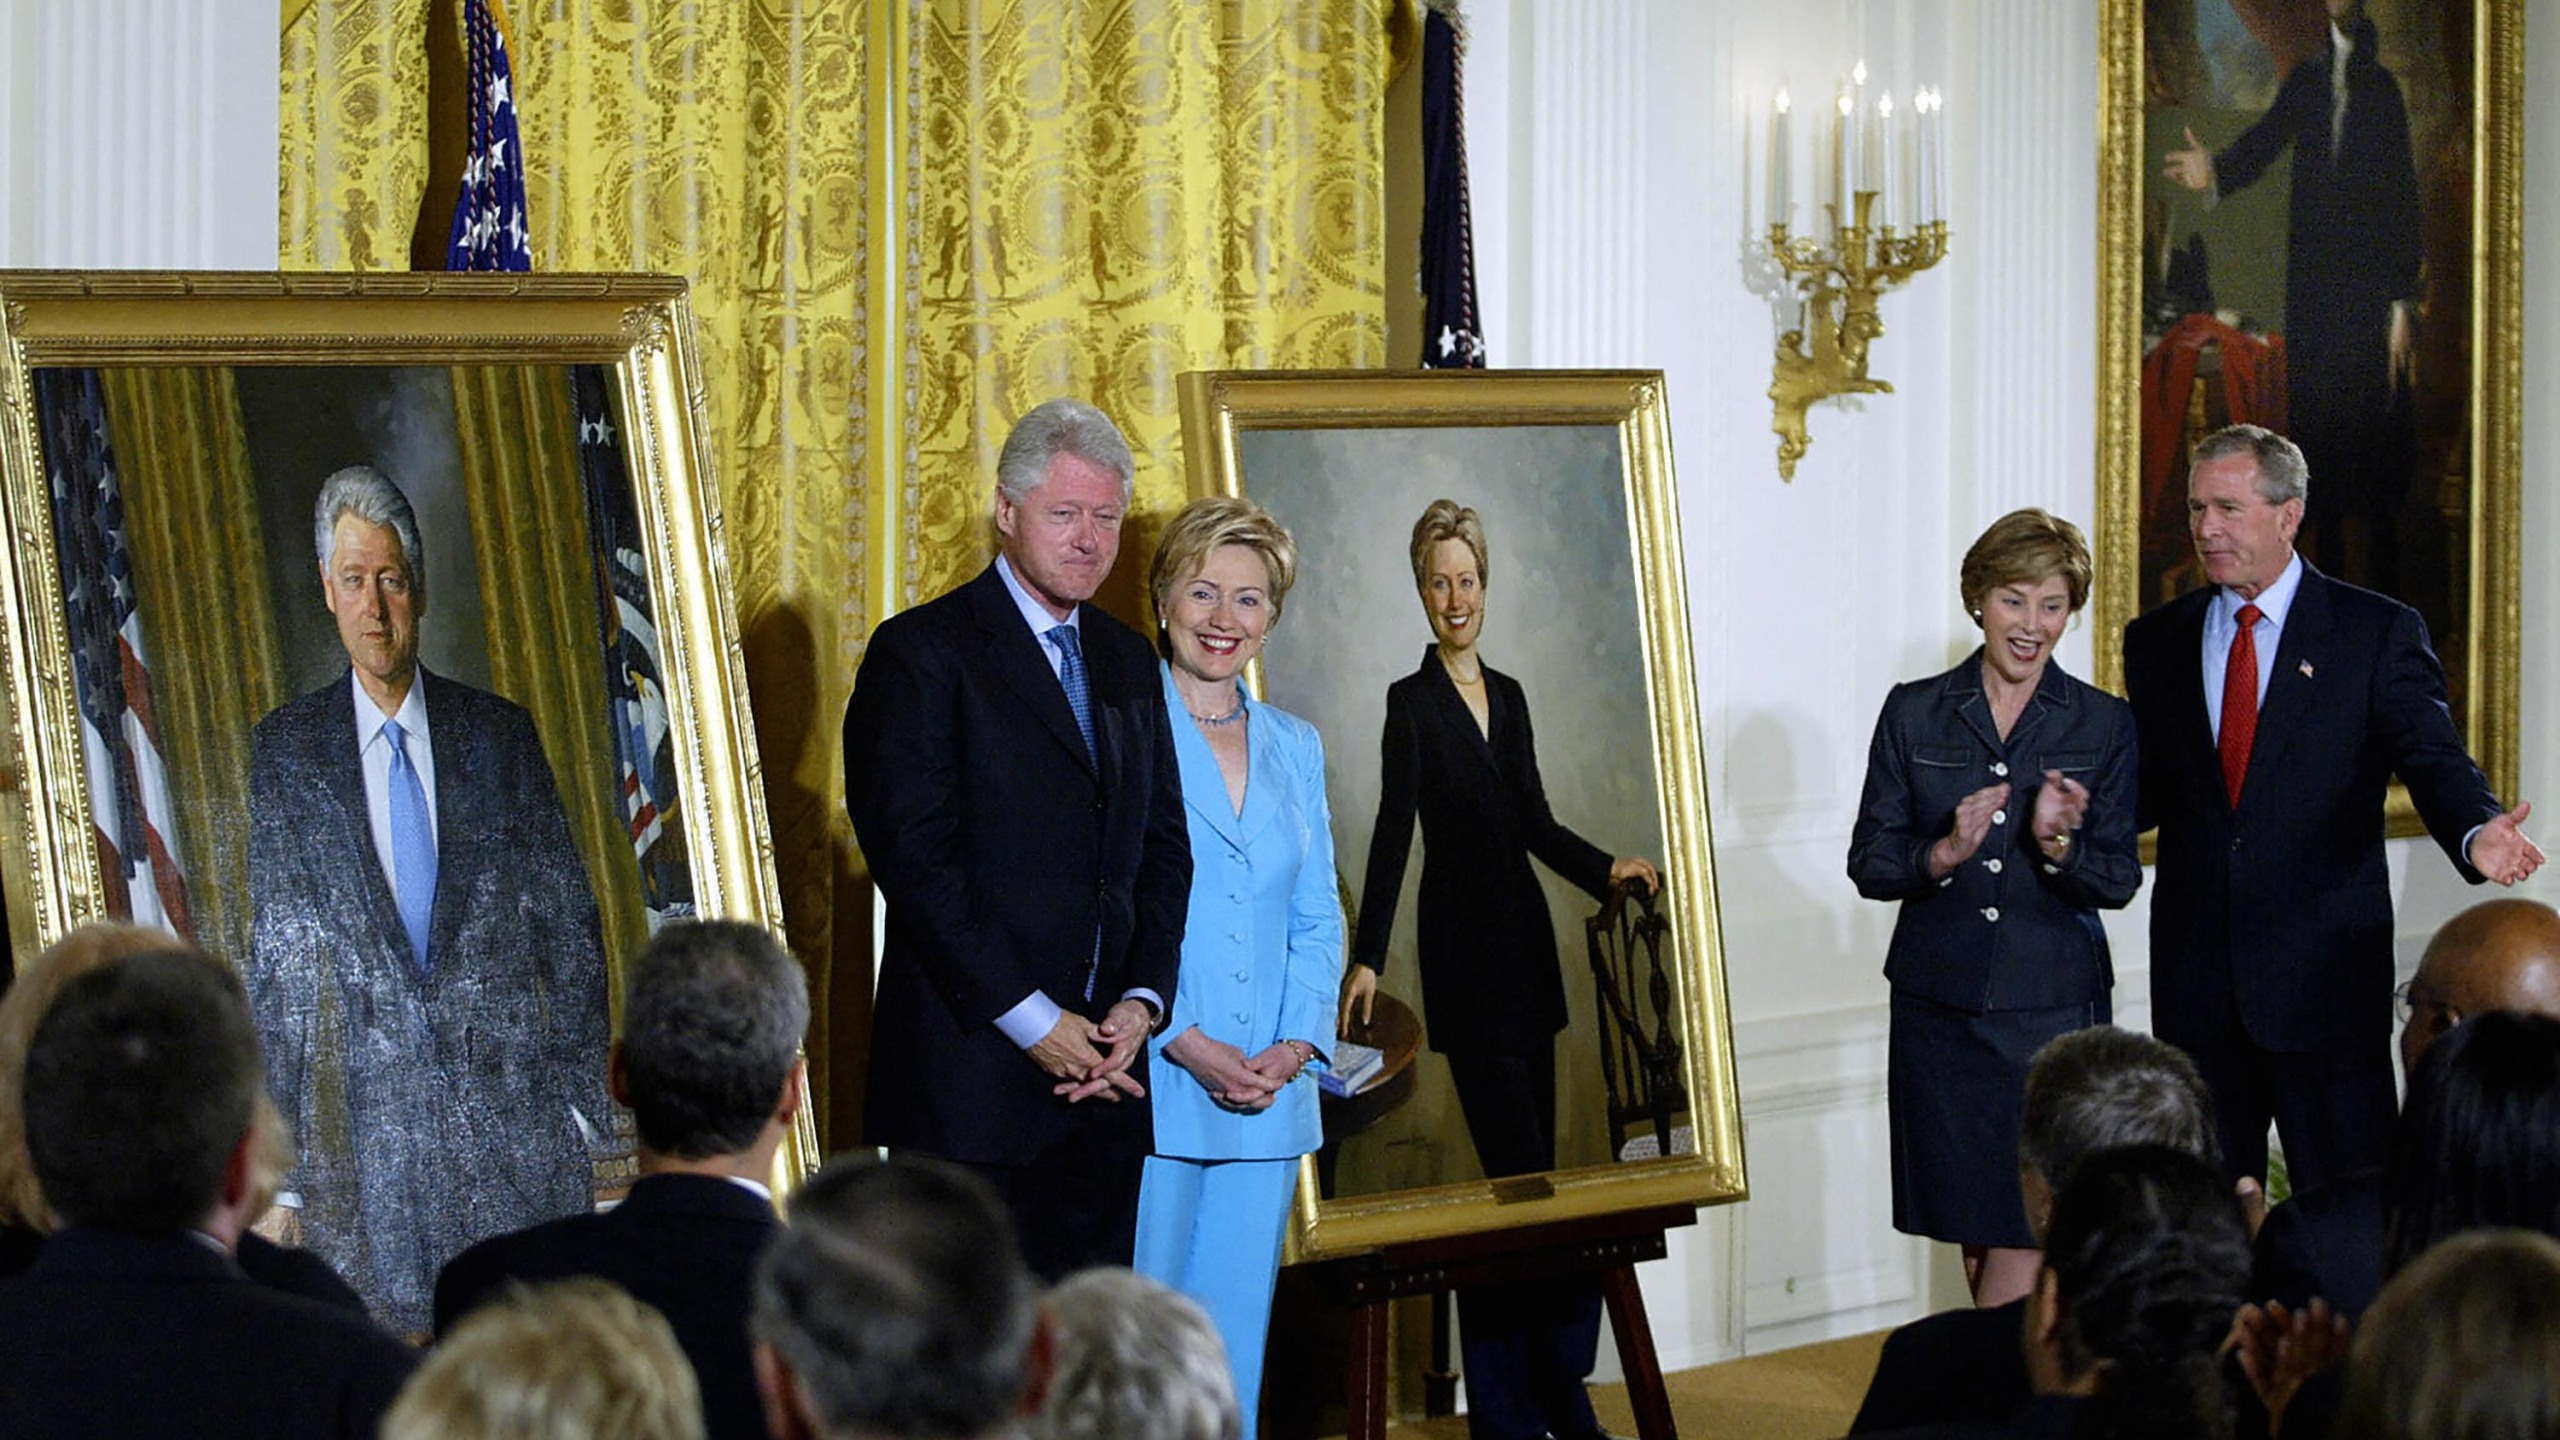 Former US President Bill Clinton (L) and Senator Hillary Clinton (2nd-L) stand by their offical White House portraits during the unveiling event hosted by President George W. Bush (R) and First Lady Laura Bush (2nd-R) 14 June, 2004, in the East Room of the White House in Washington, DC. (TIM SLOAN/AFP via Getty Images)